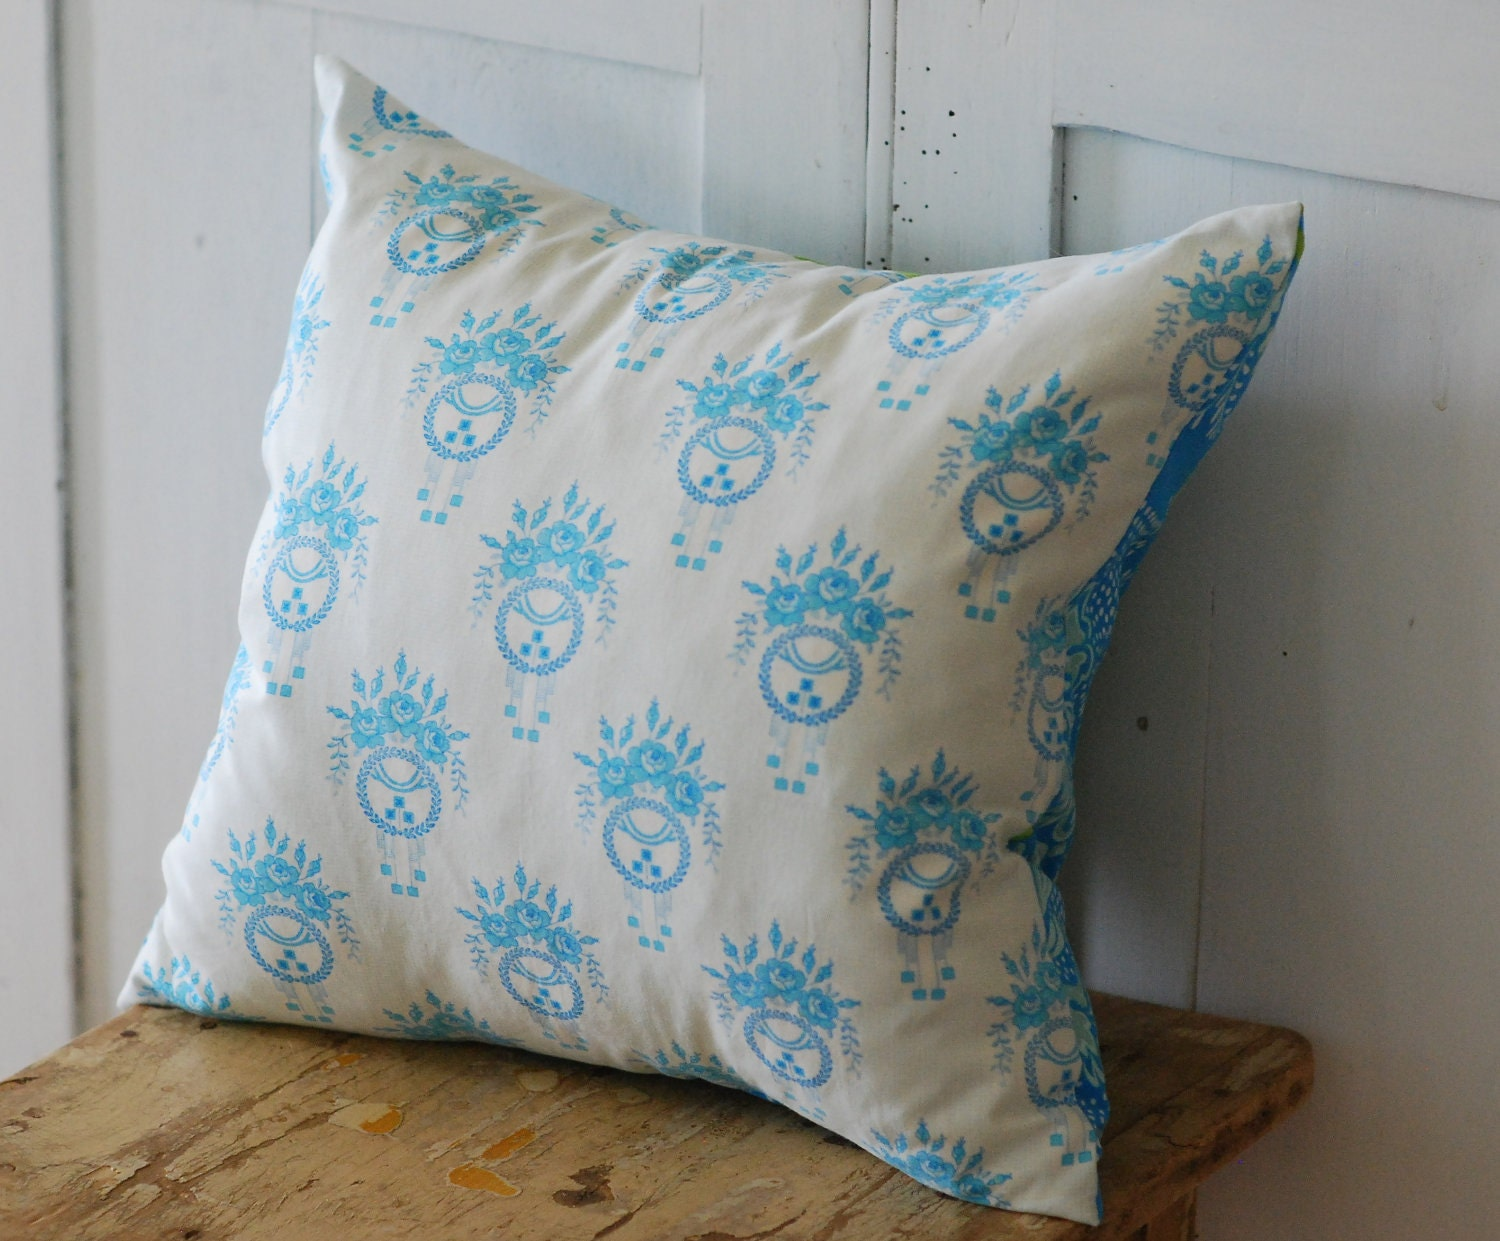 Shabby Chic Bed Pillows : Shabby Chic Pillow Cover Decorative Pillows by KenilworthPlace